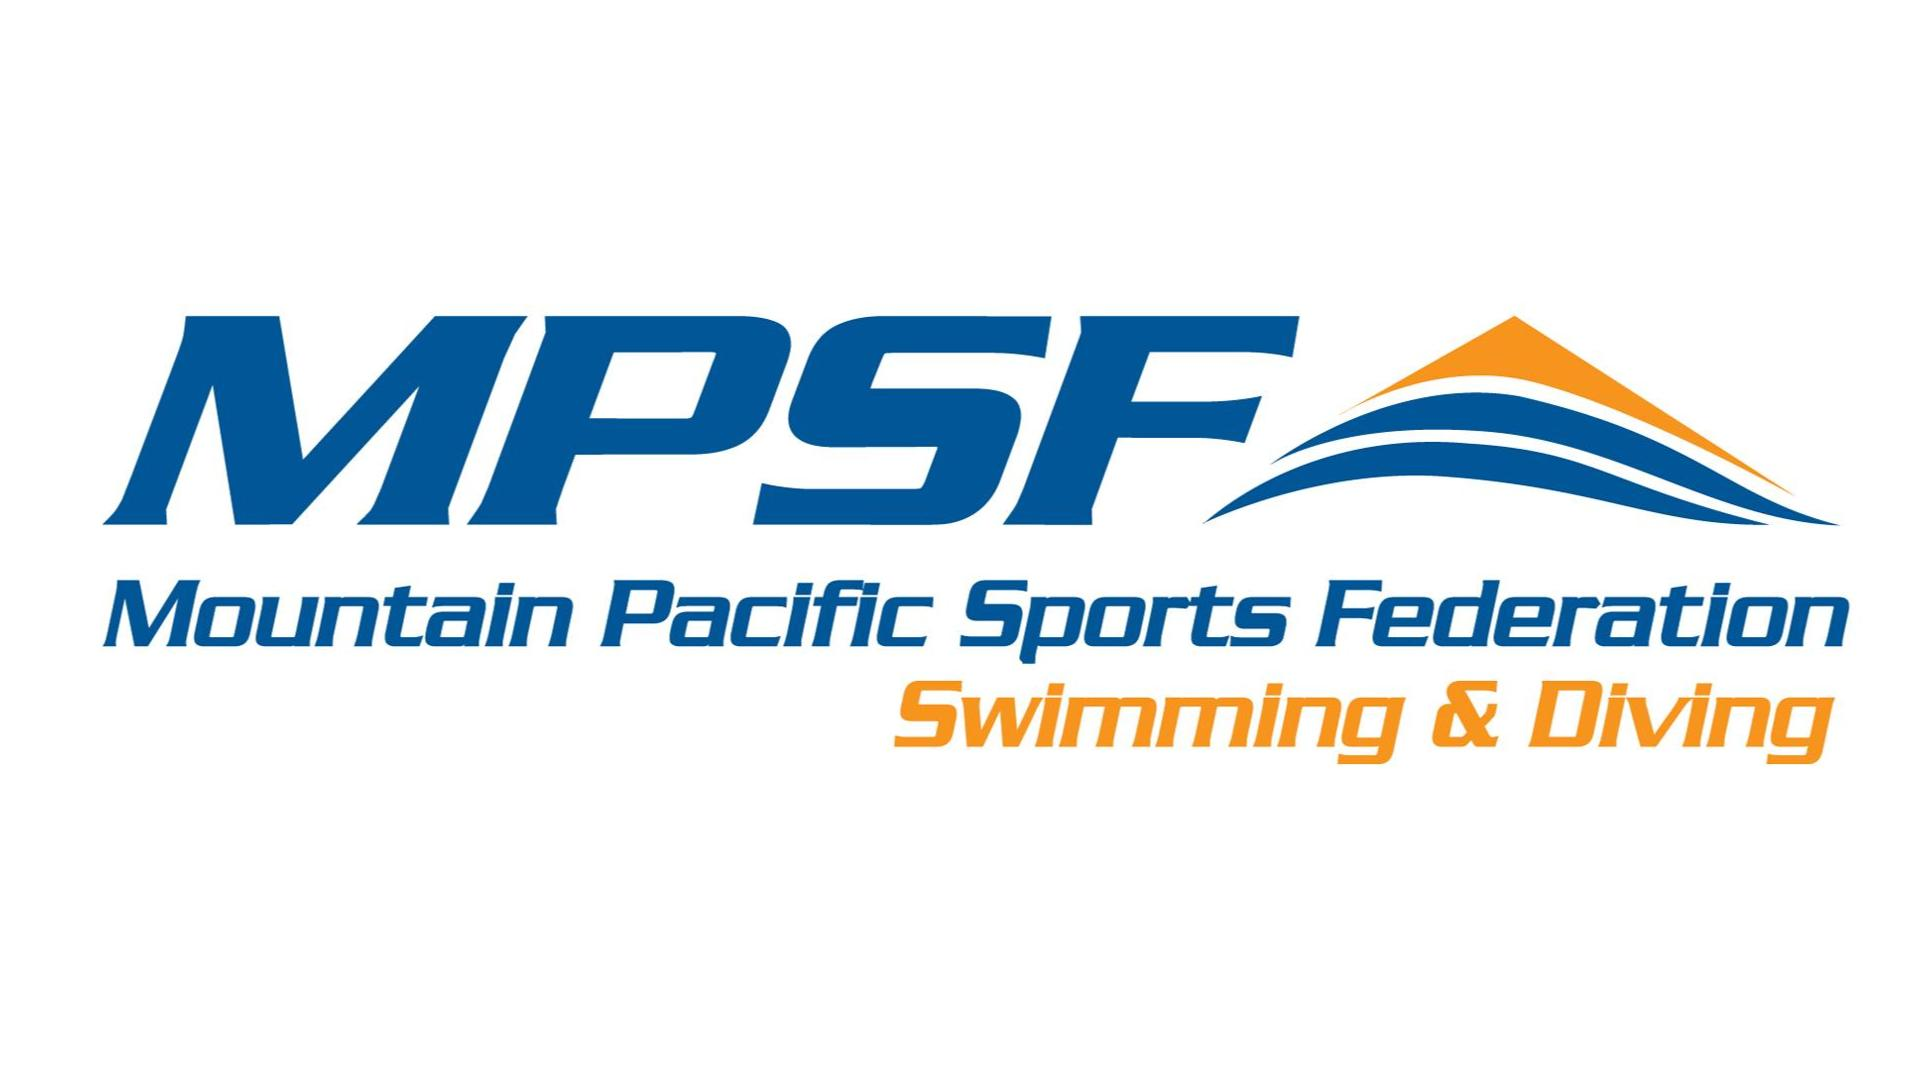 Click this image to Visit MPSF and view Championship Information